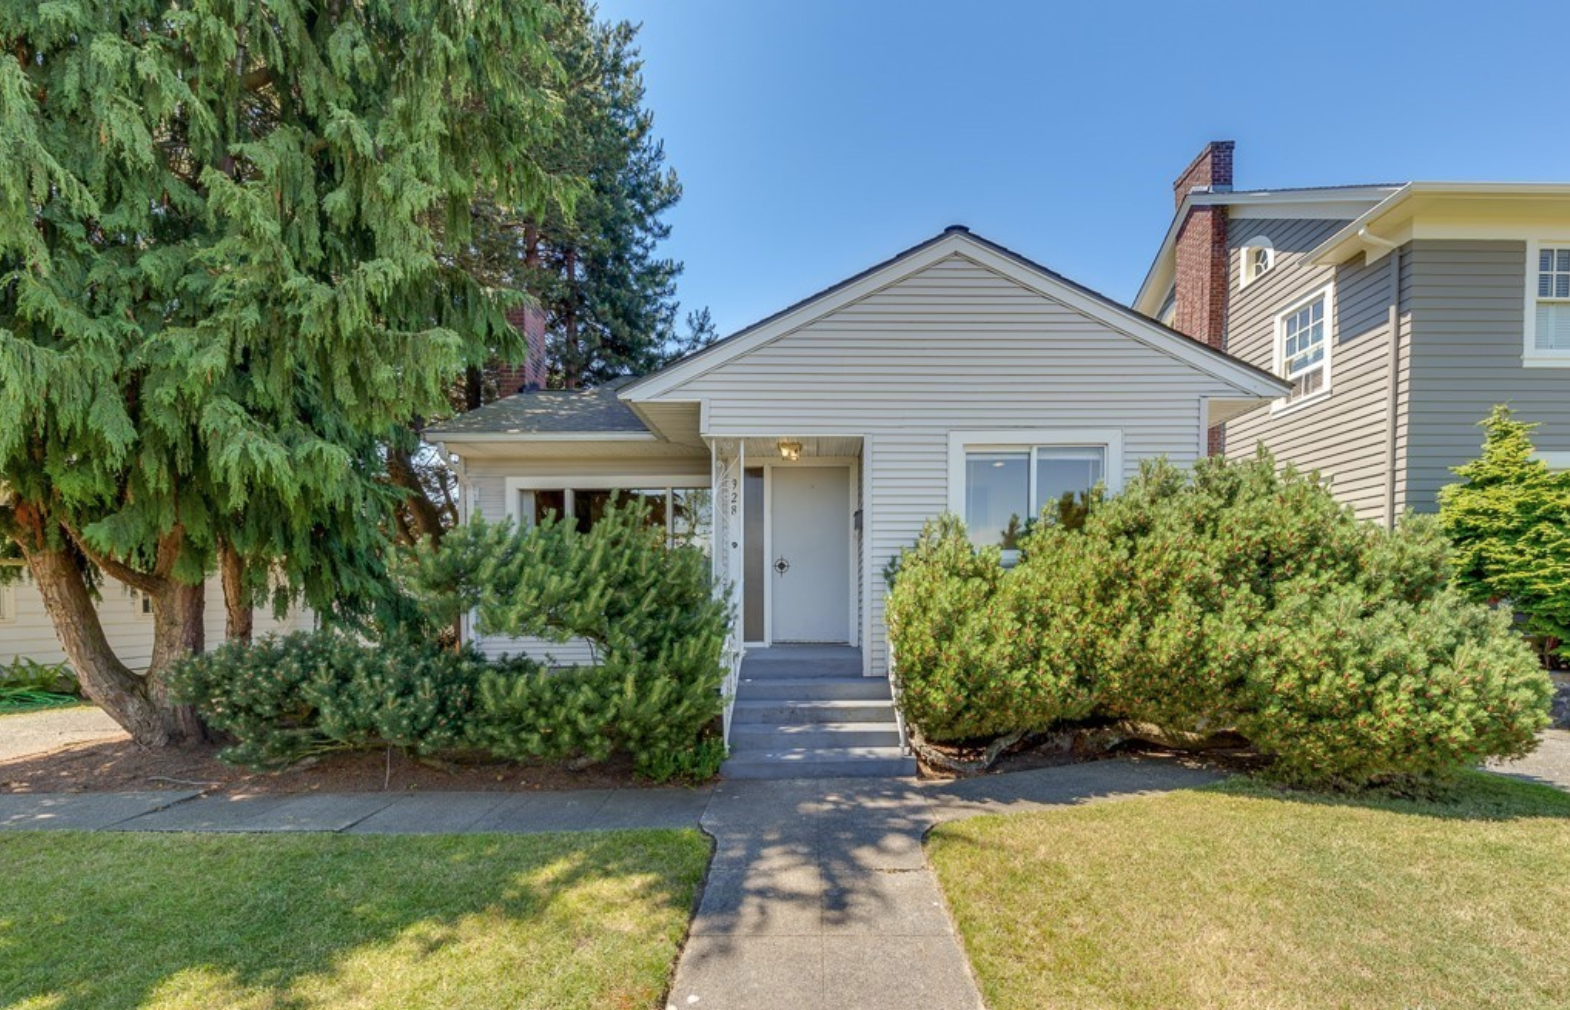 928 hoyt Avenue - Everett, WA // SOLD